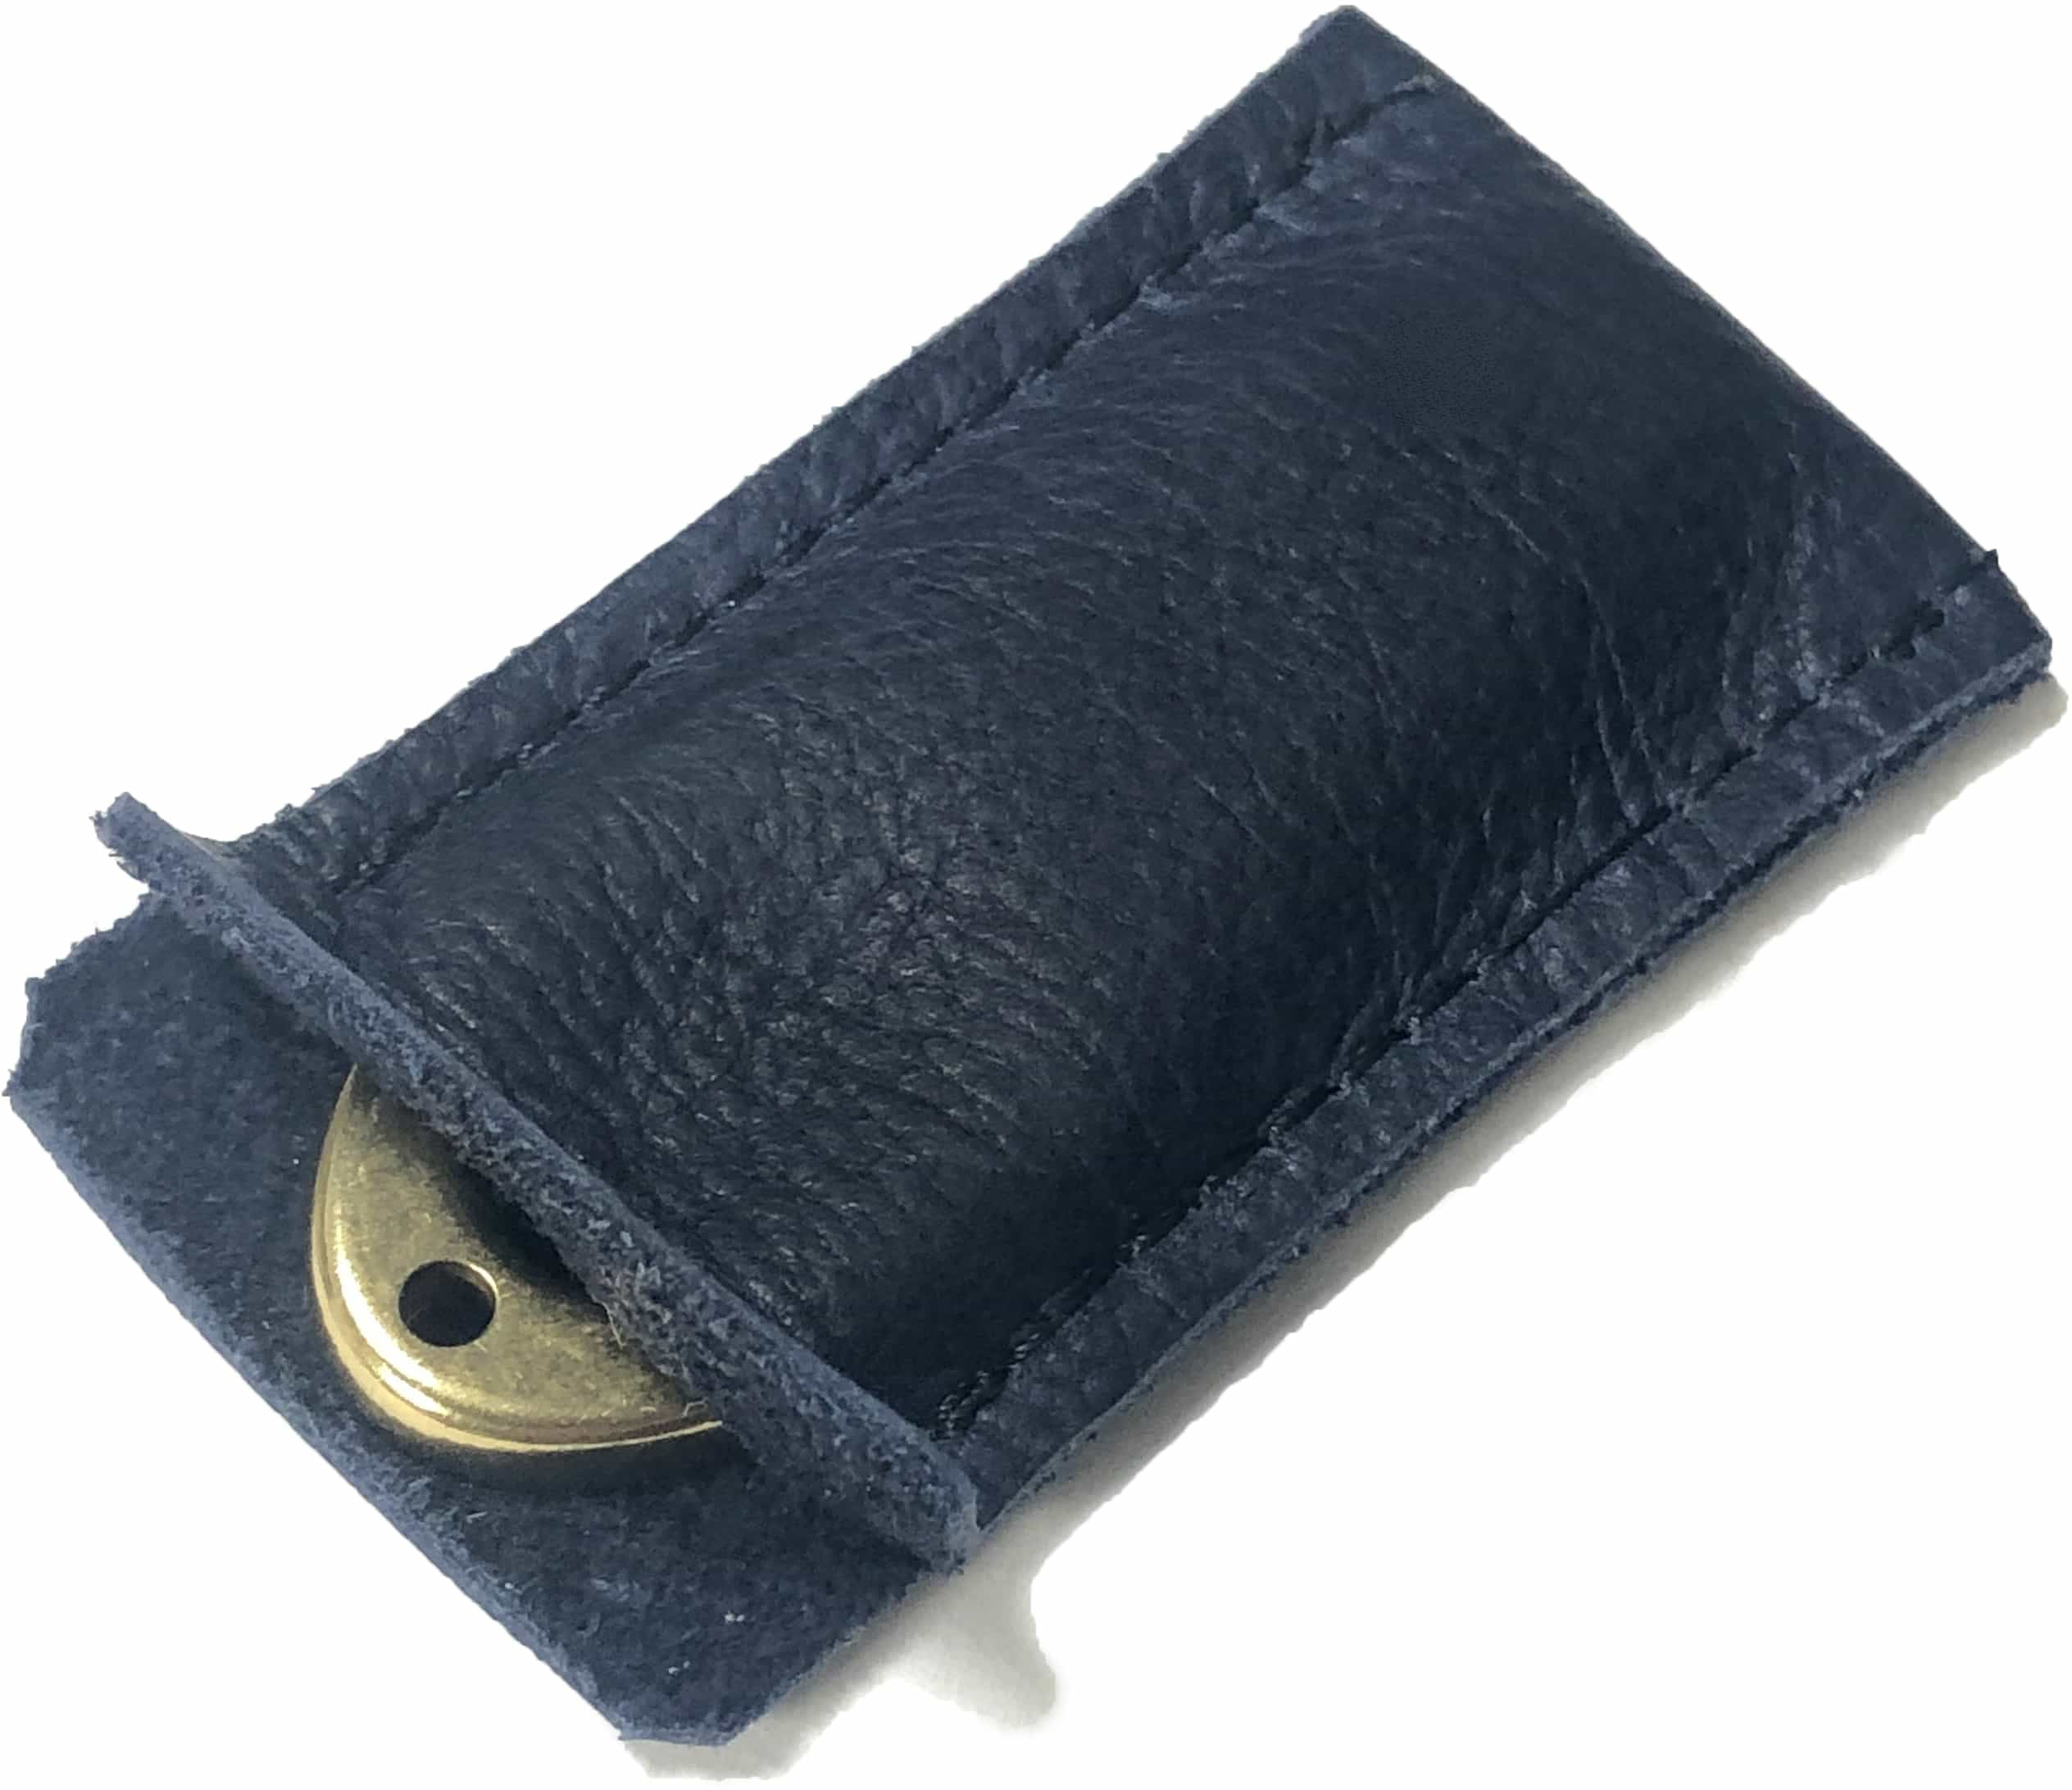 Golf divot tool solid brass with blue aniline leather sleeve, shown inserted.